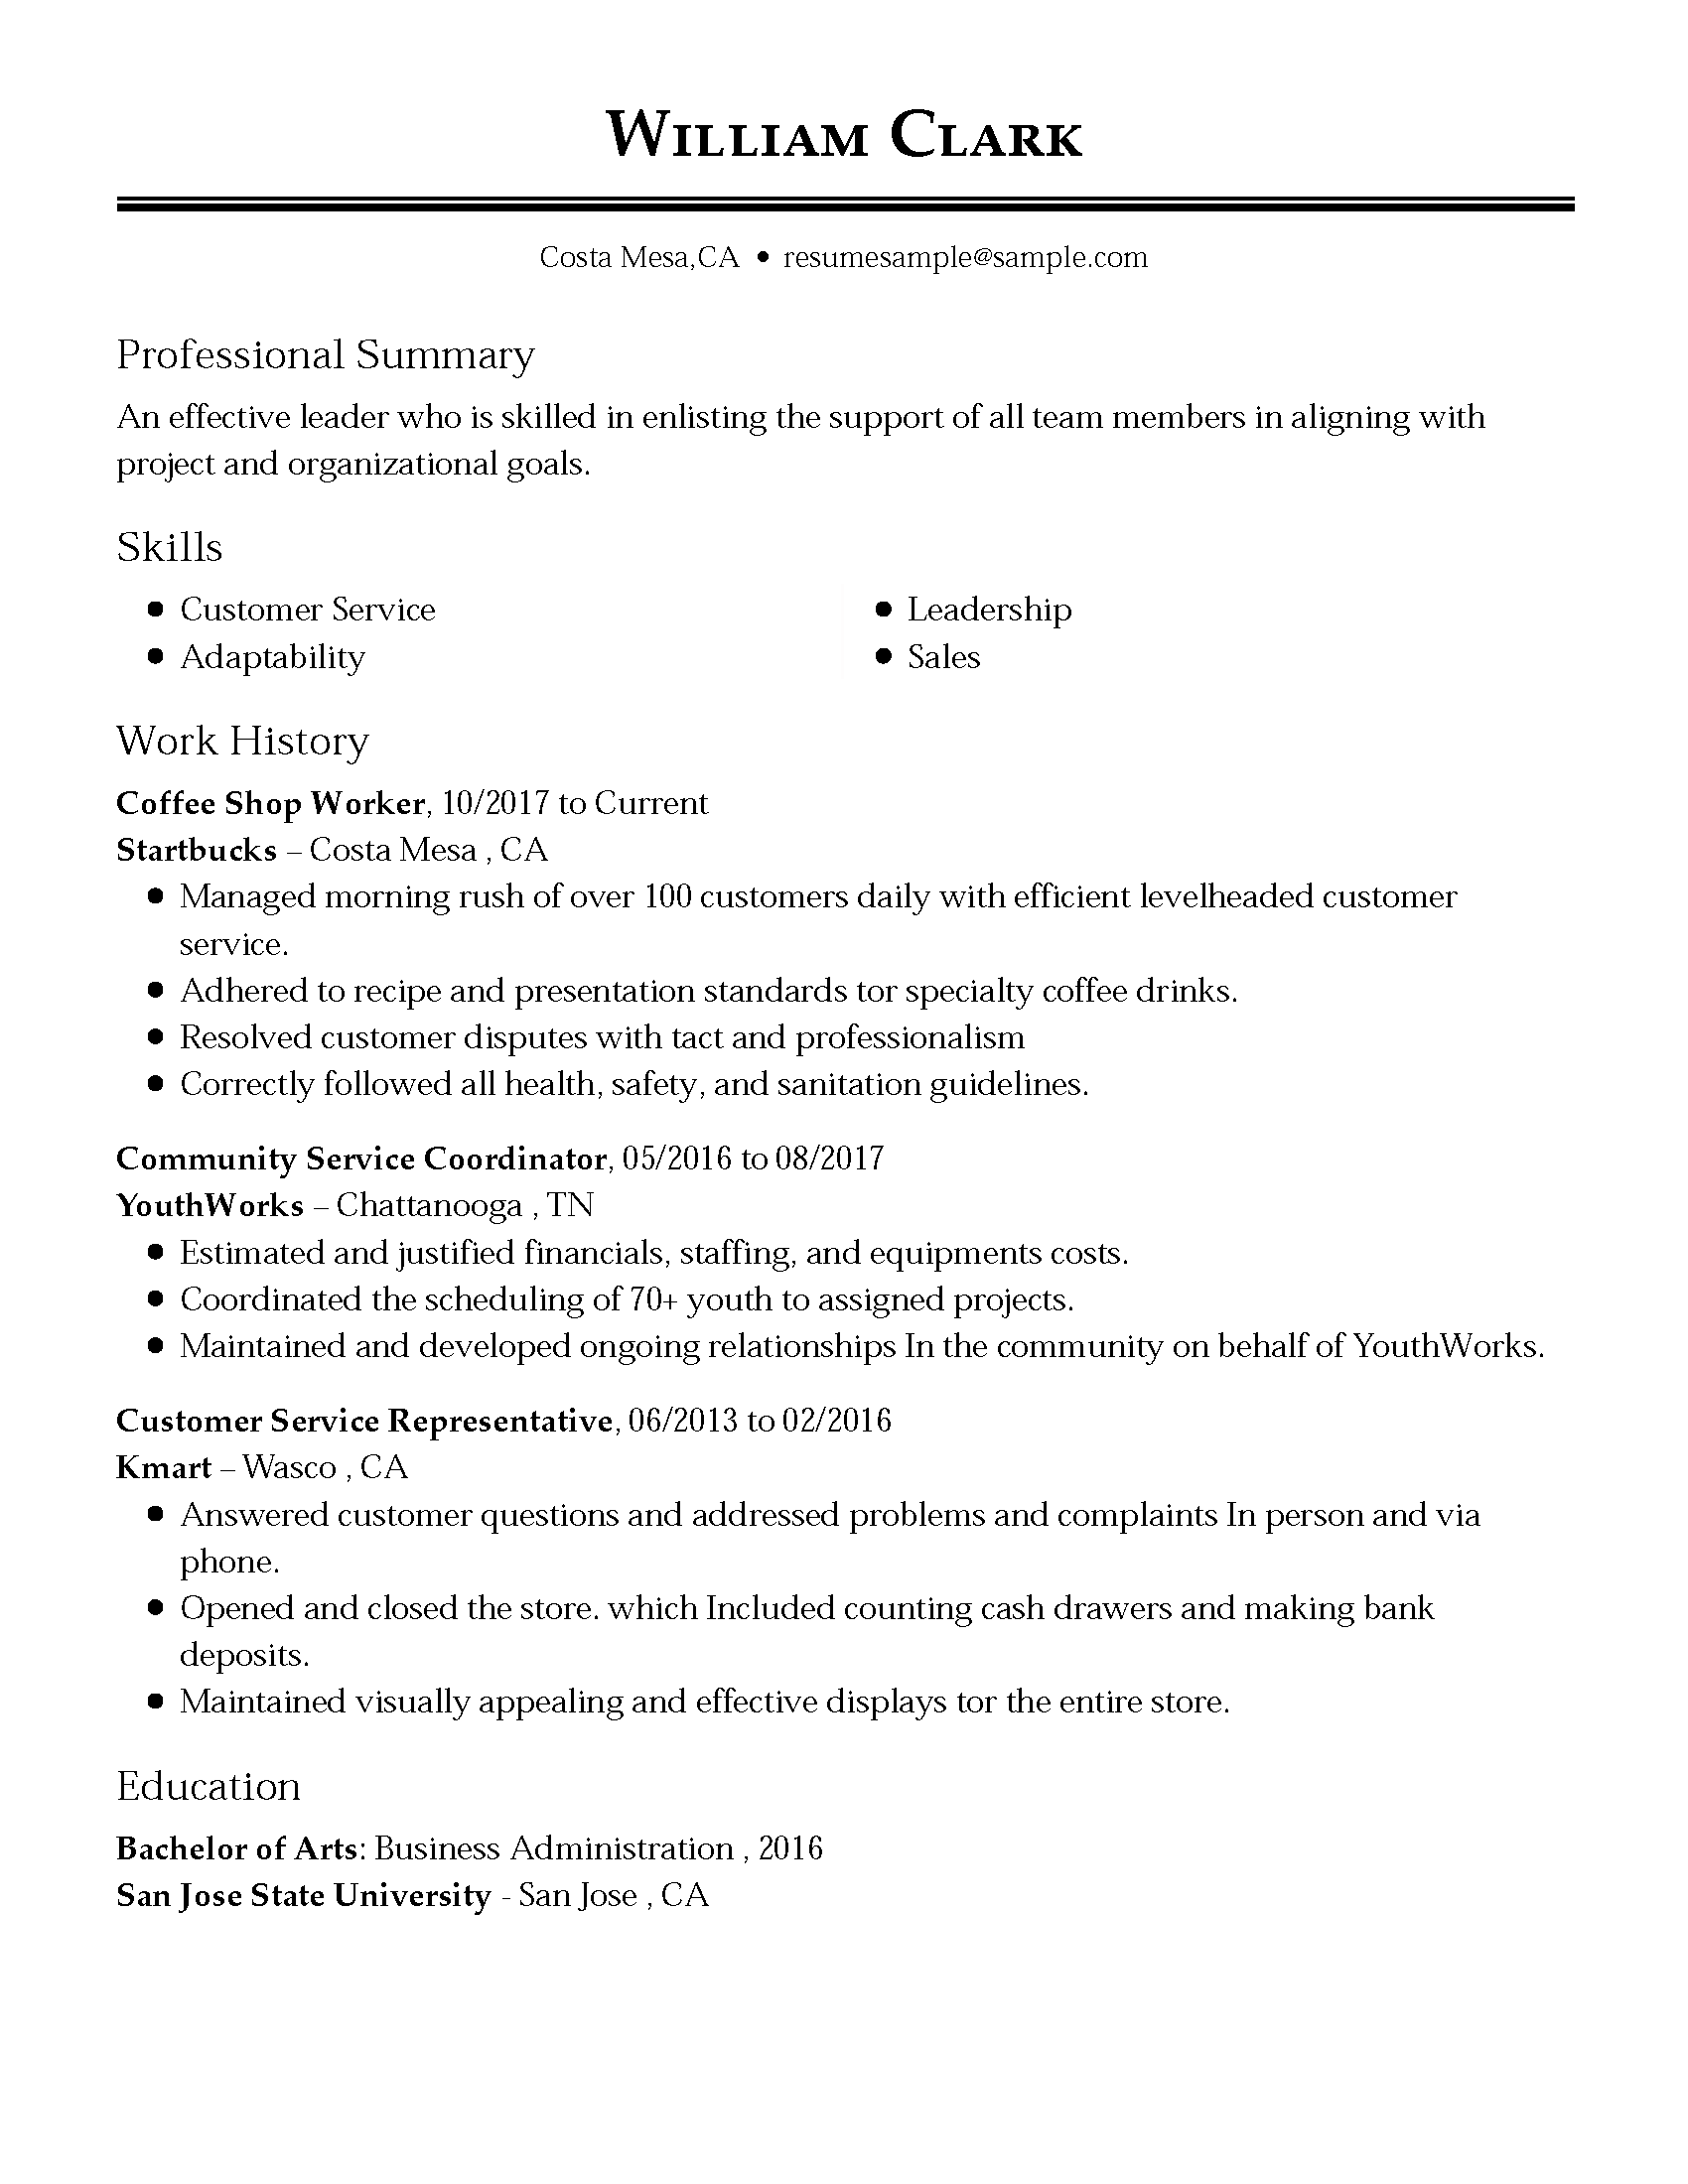 Resume Template For Customer Service Representative Customer Service Representative Resume Examples Free To